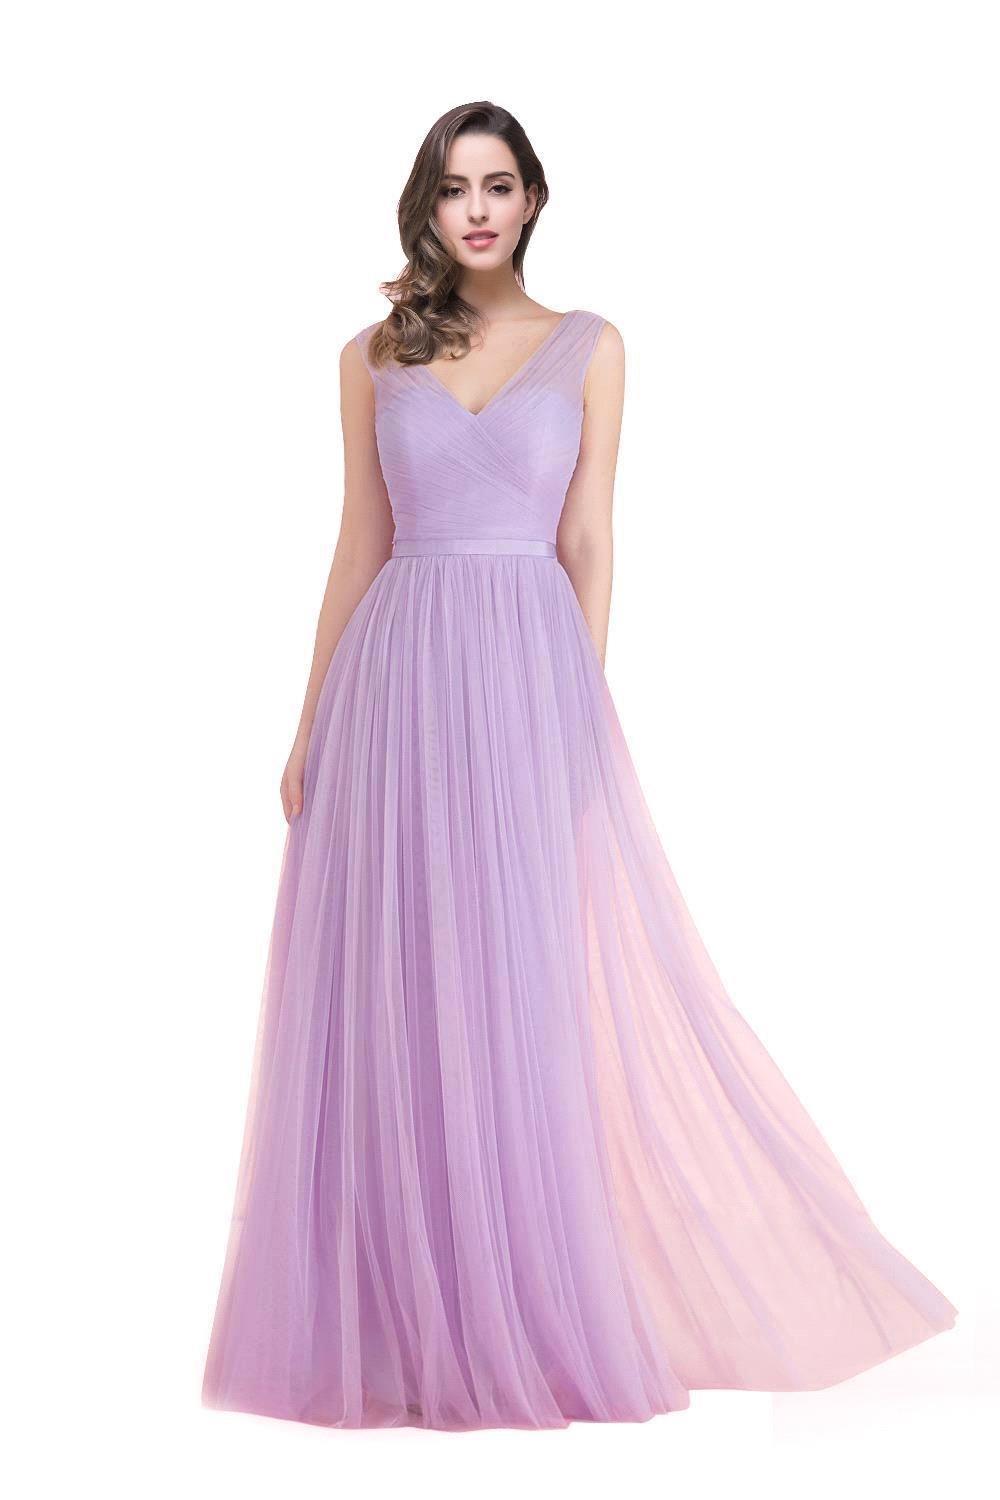 In Stock Cheap Crepe Pleat Girls Junior Camo Lilac Bridesmaid Dresses 2016 A line Floor Length Girls Pageant Dress(China (Mainland))